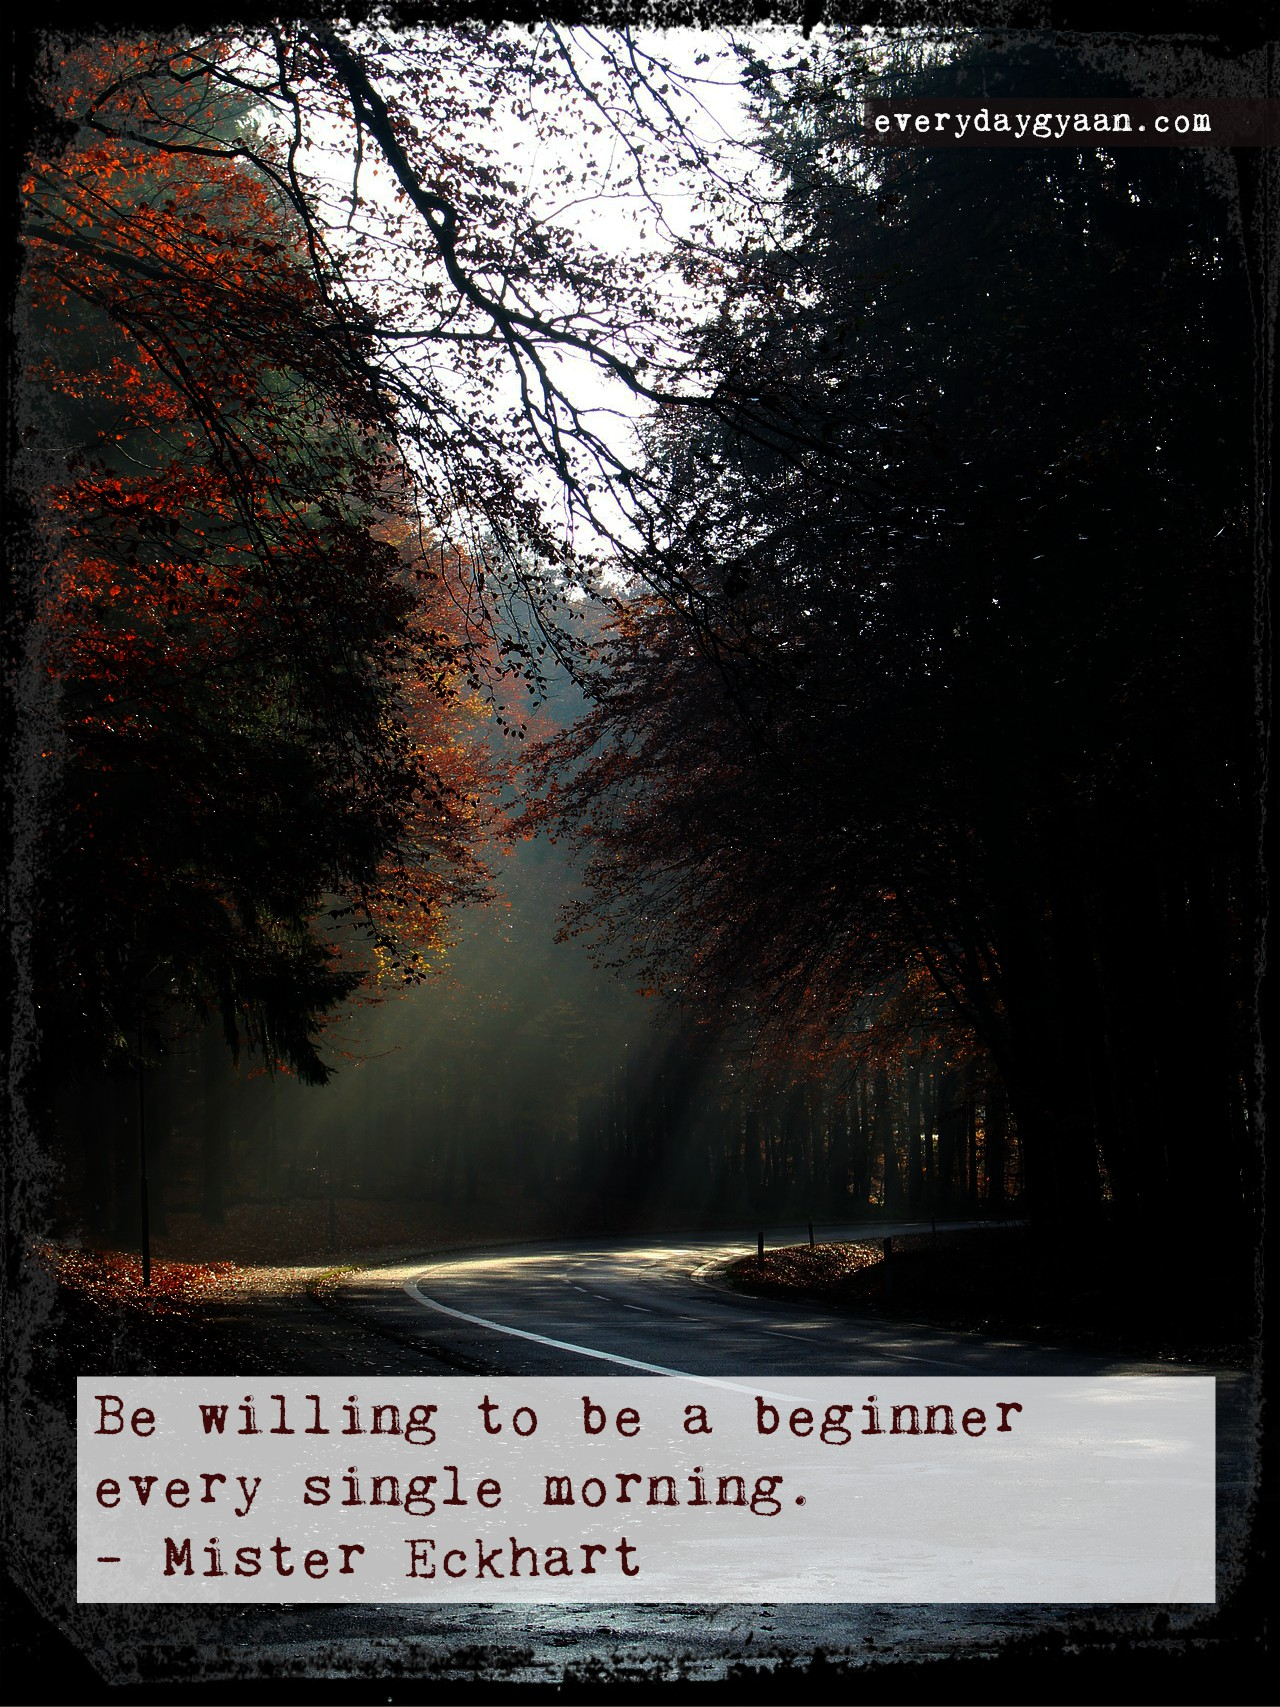 Be a beginner every single morning!